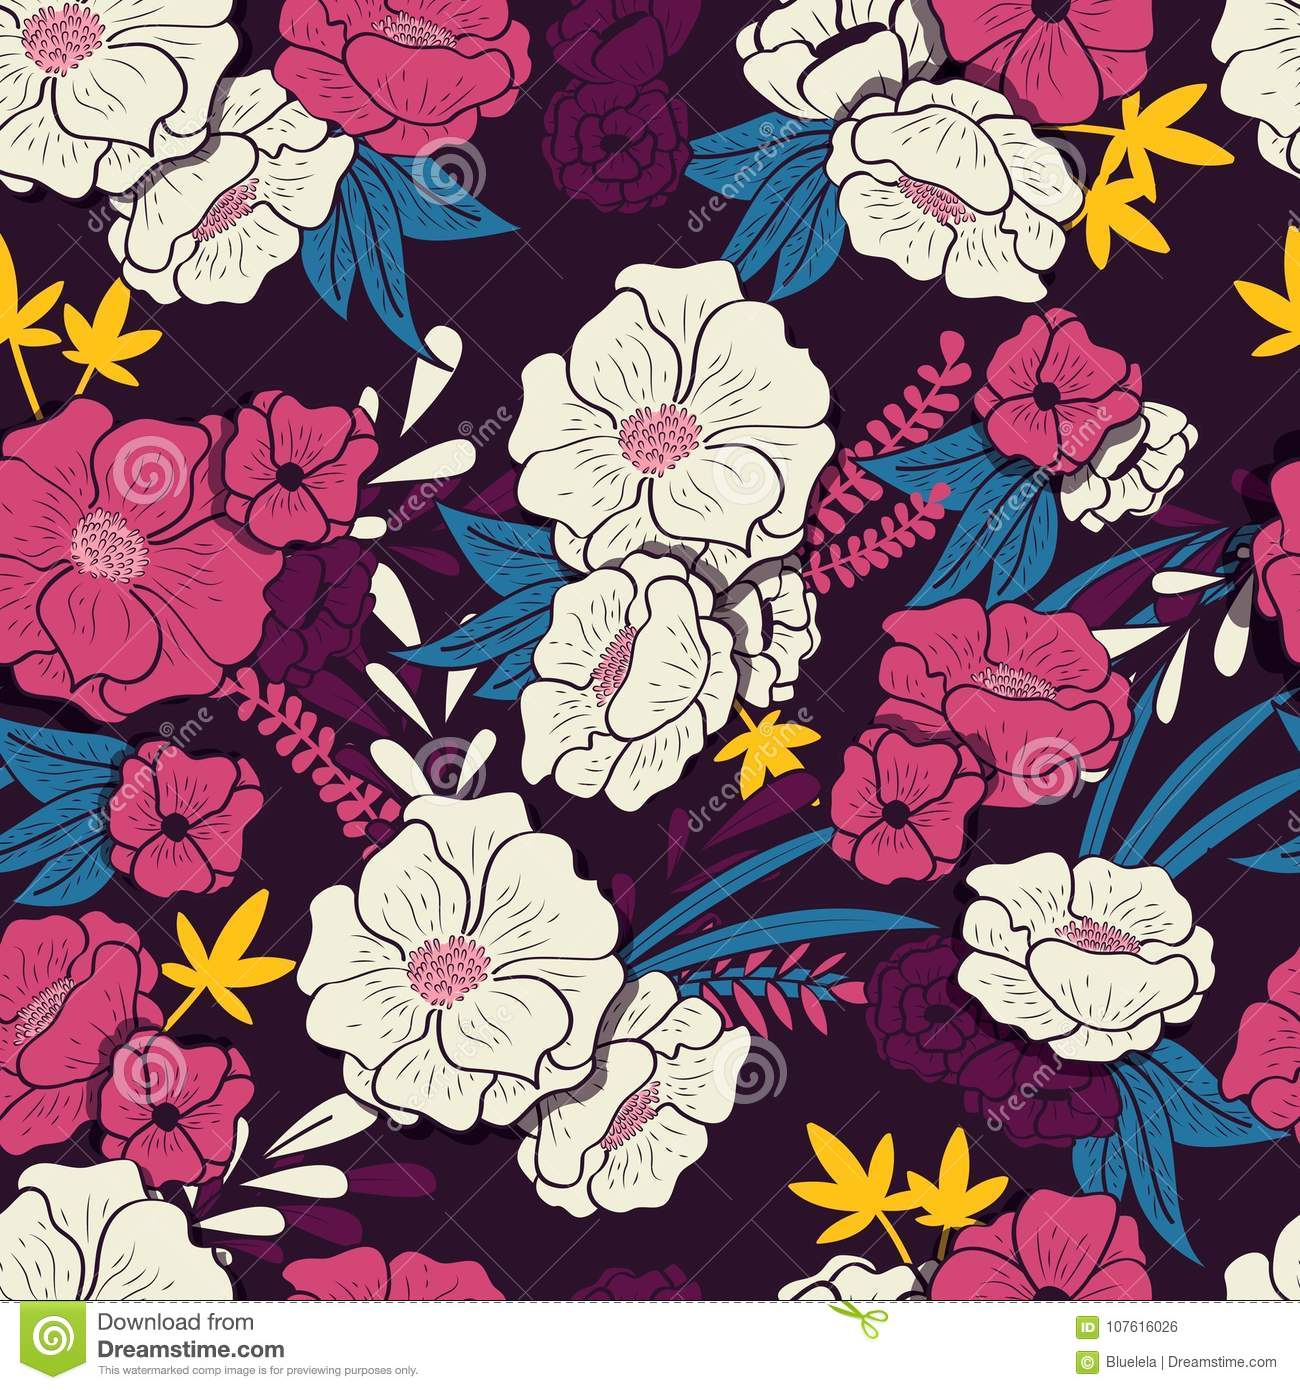 Floral jungle with snakes seamless pattern, tropical flowers and leaves, botanical hand drawn vibrant